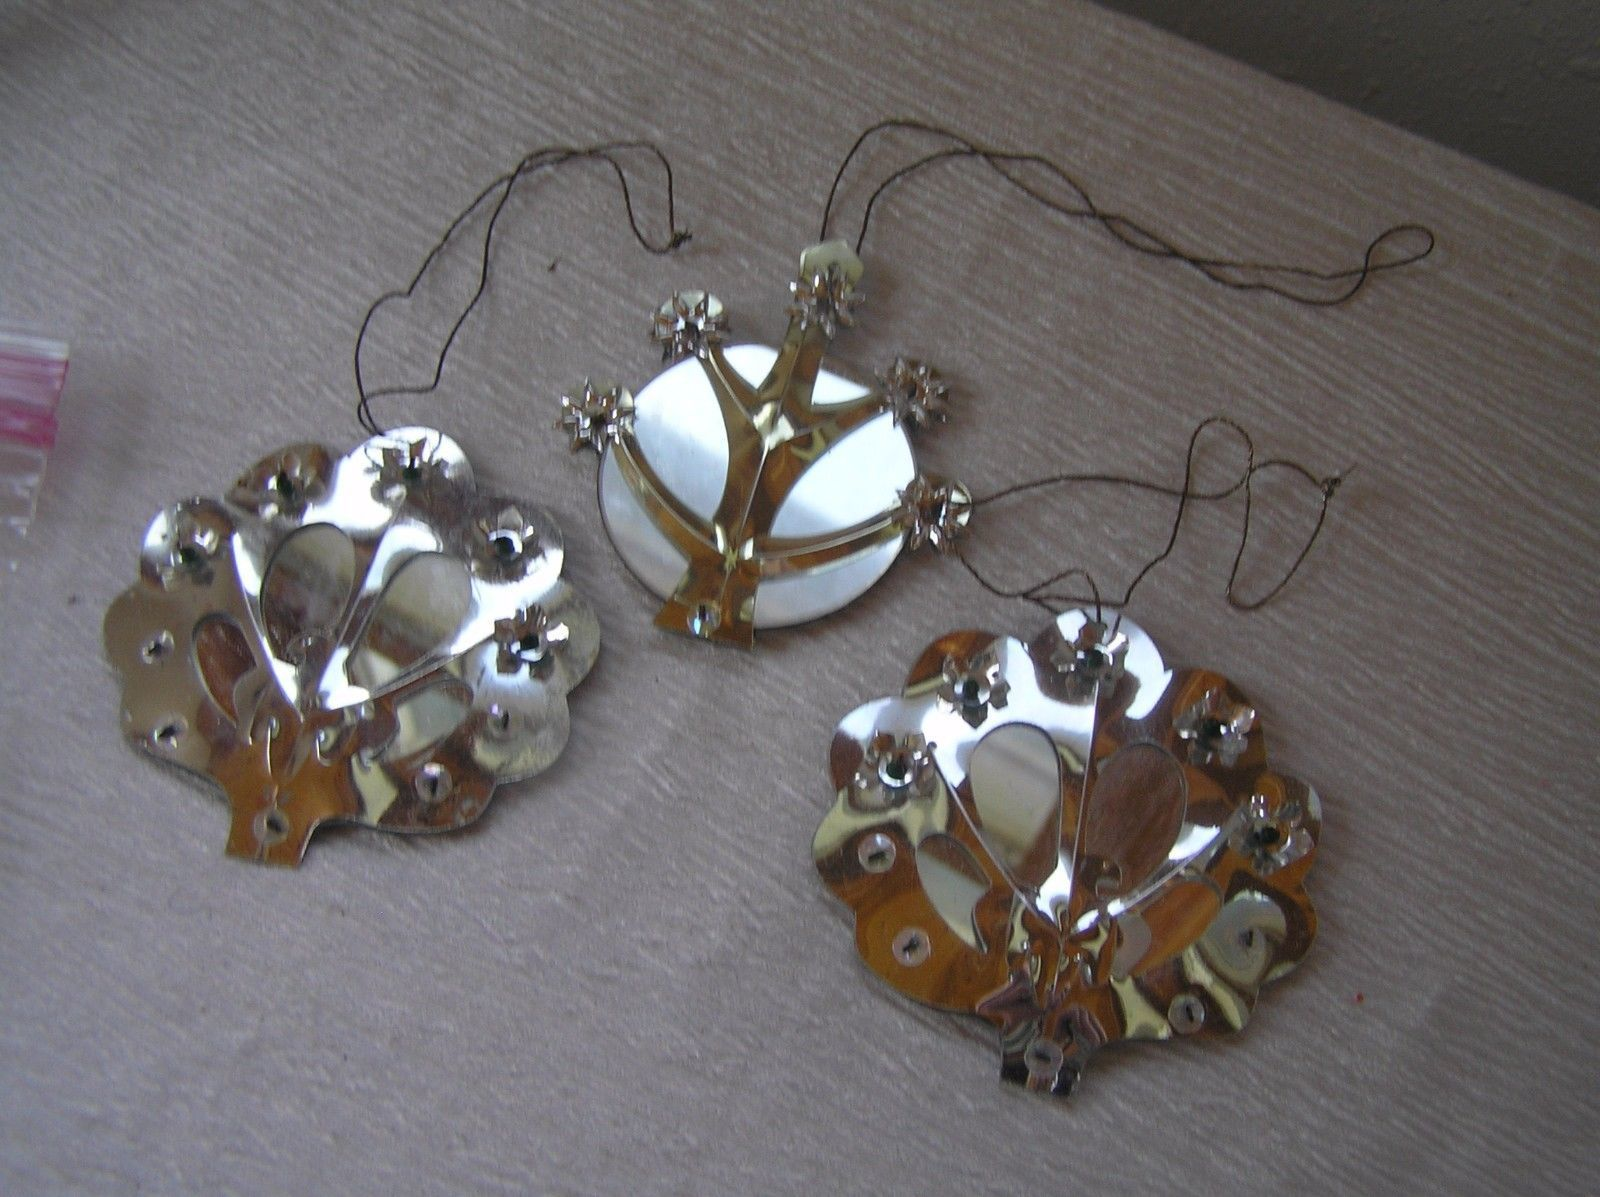 Vintage Lot of 3 Round Mirror & Silver Colored Decorations Folk Art Christmas